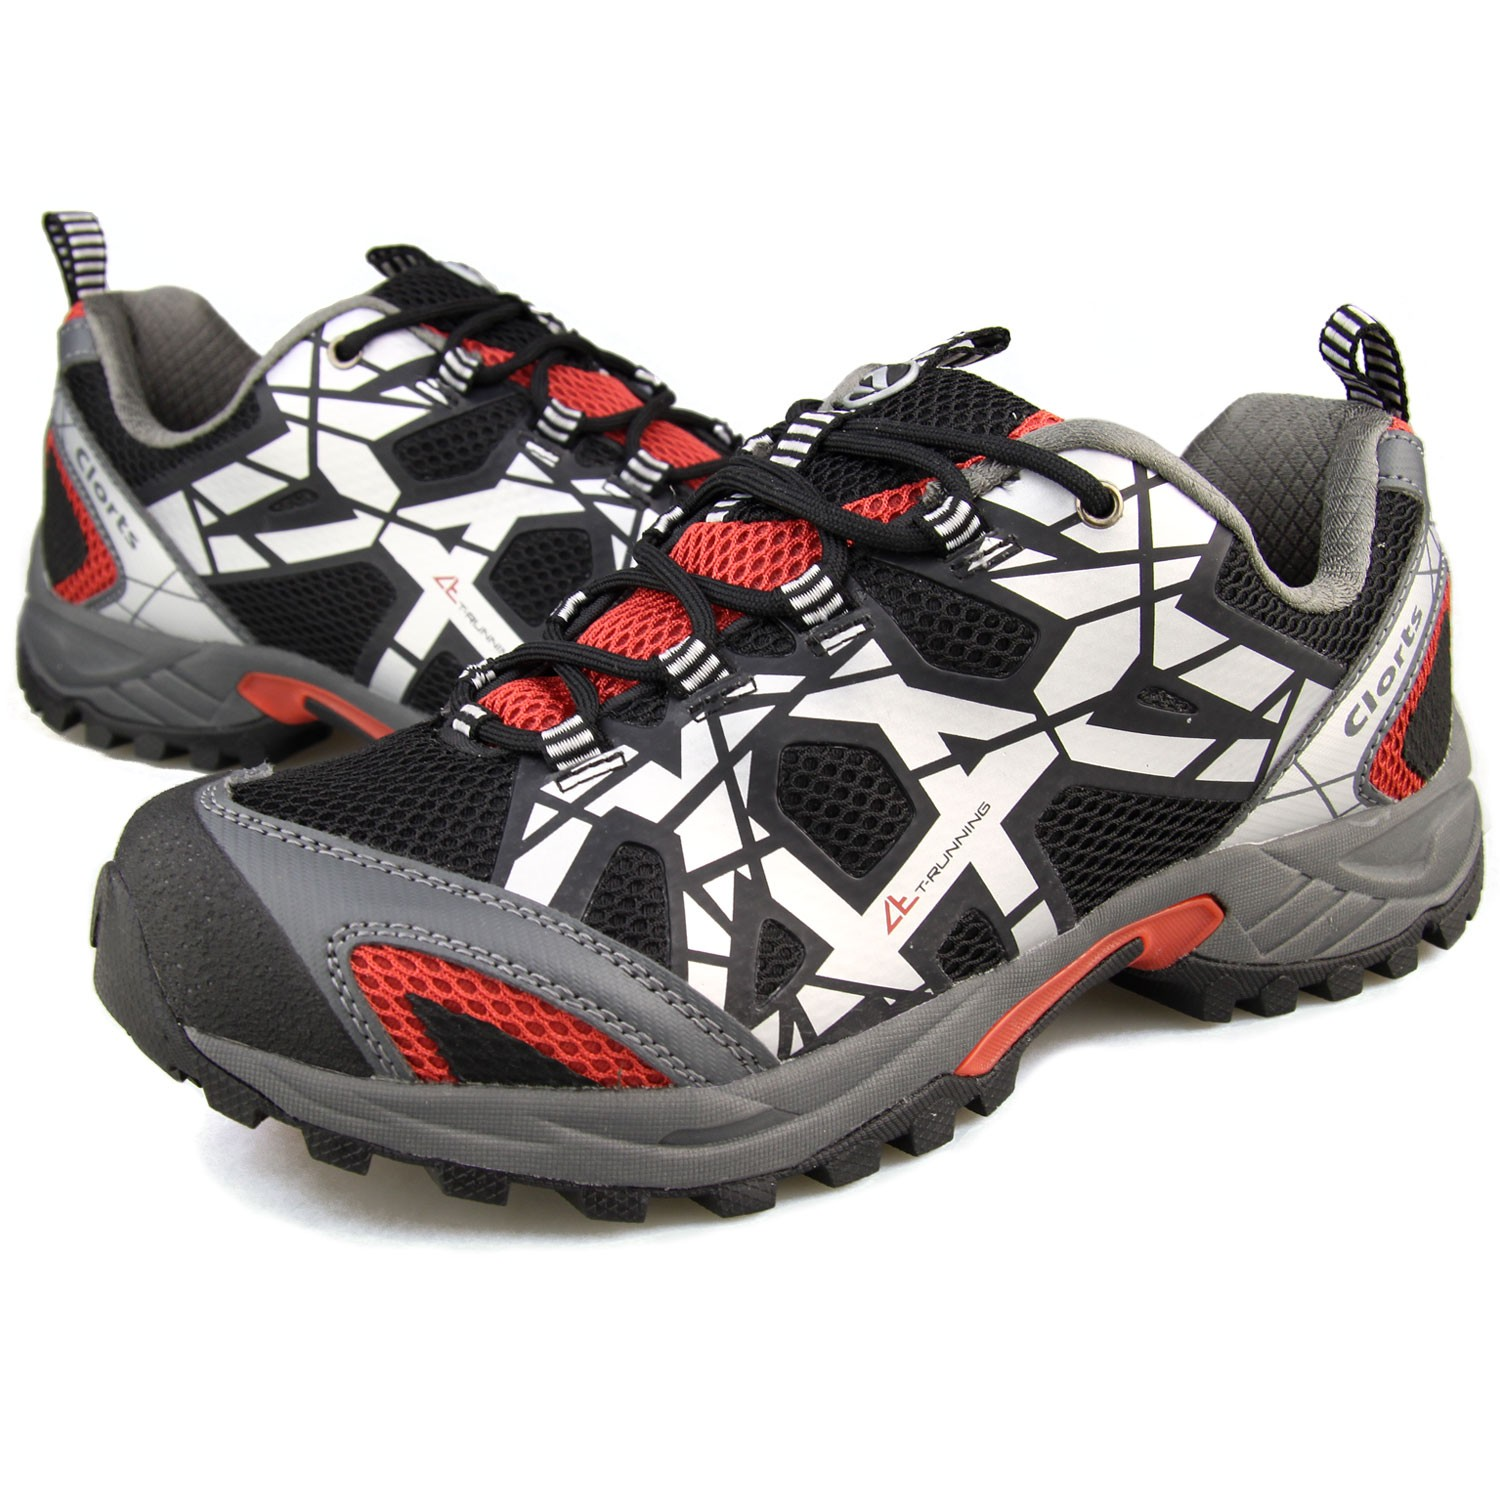 Water Resistant Waterproof Cross Coutry Tail Running Shoes Manufacturers, Water Resistant Waterproof Cross Coutry Tail Running Shoes Factory, Supply Water Resistant Waterproof Cross Coutry Tail Running Shoes